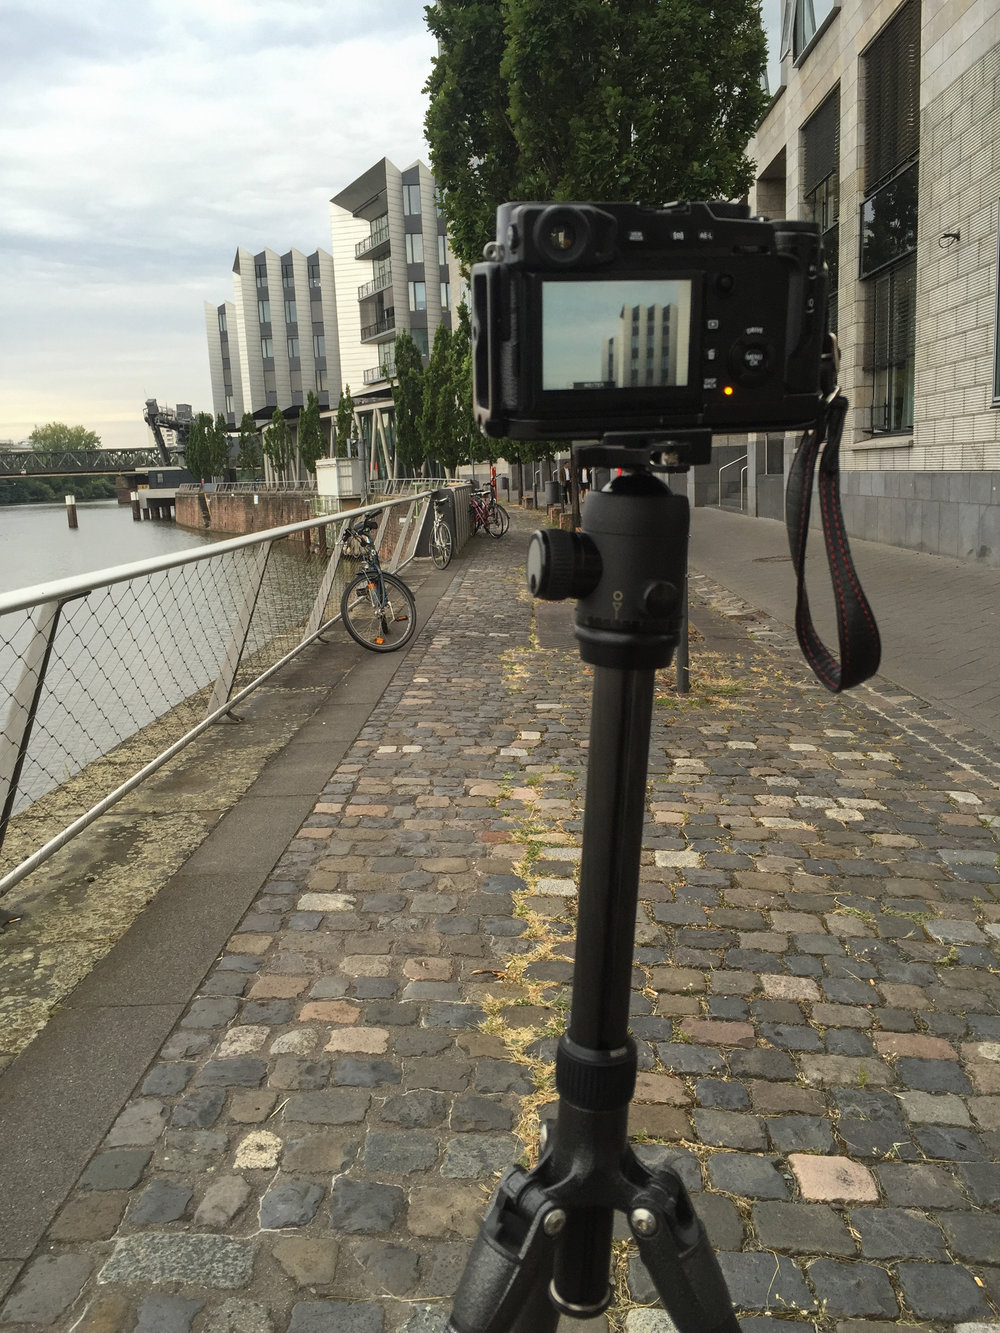 2016 | Behind the Scene, Frankfurt a/M